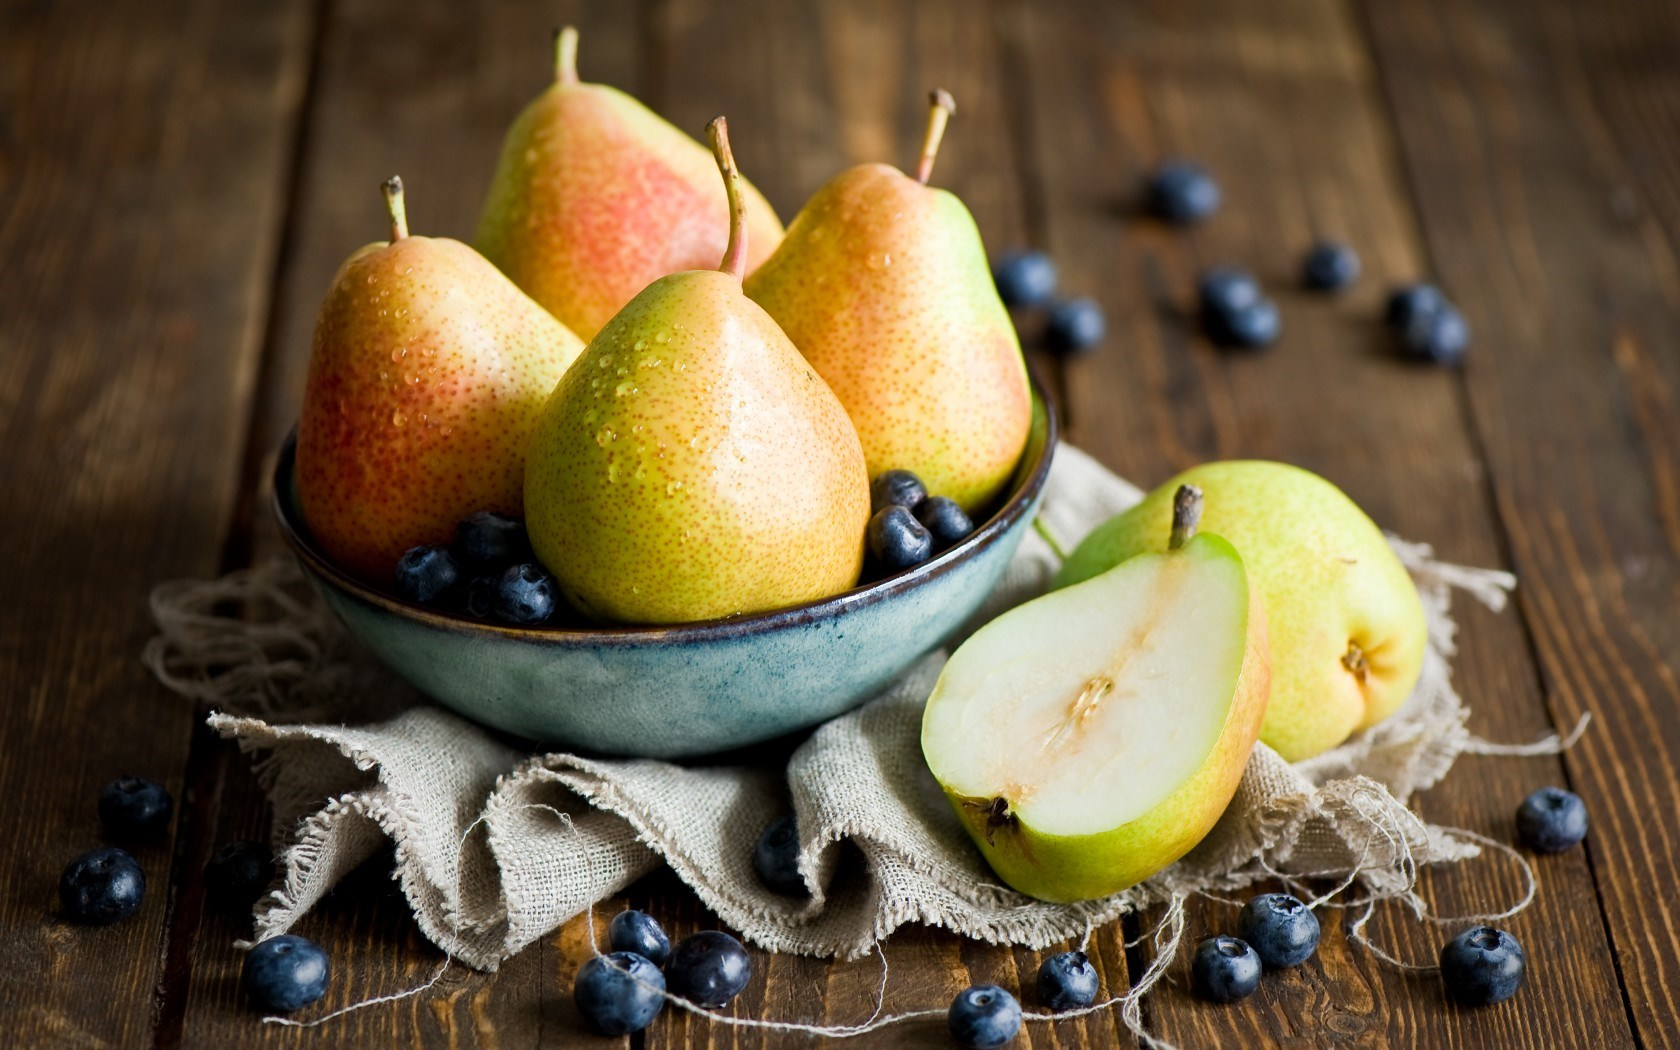 Why pears are healthy?